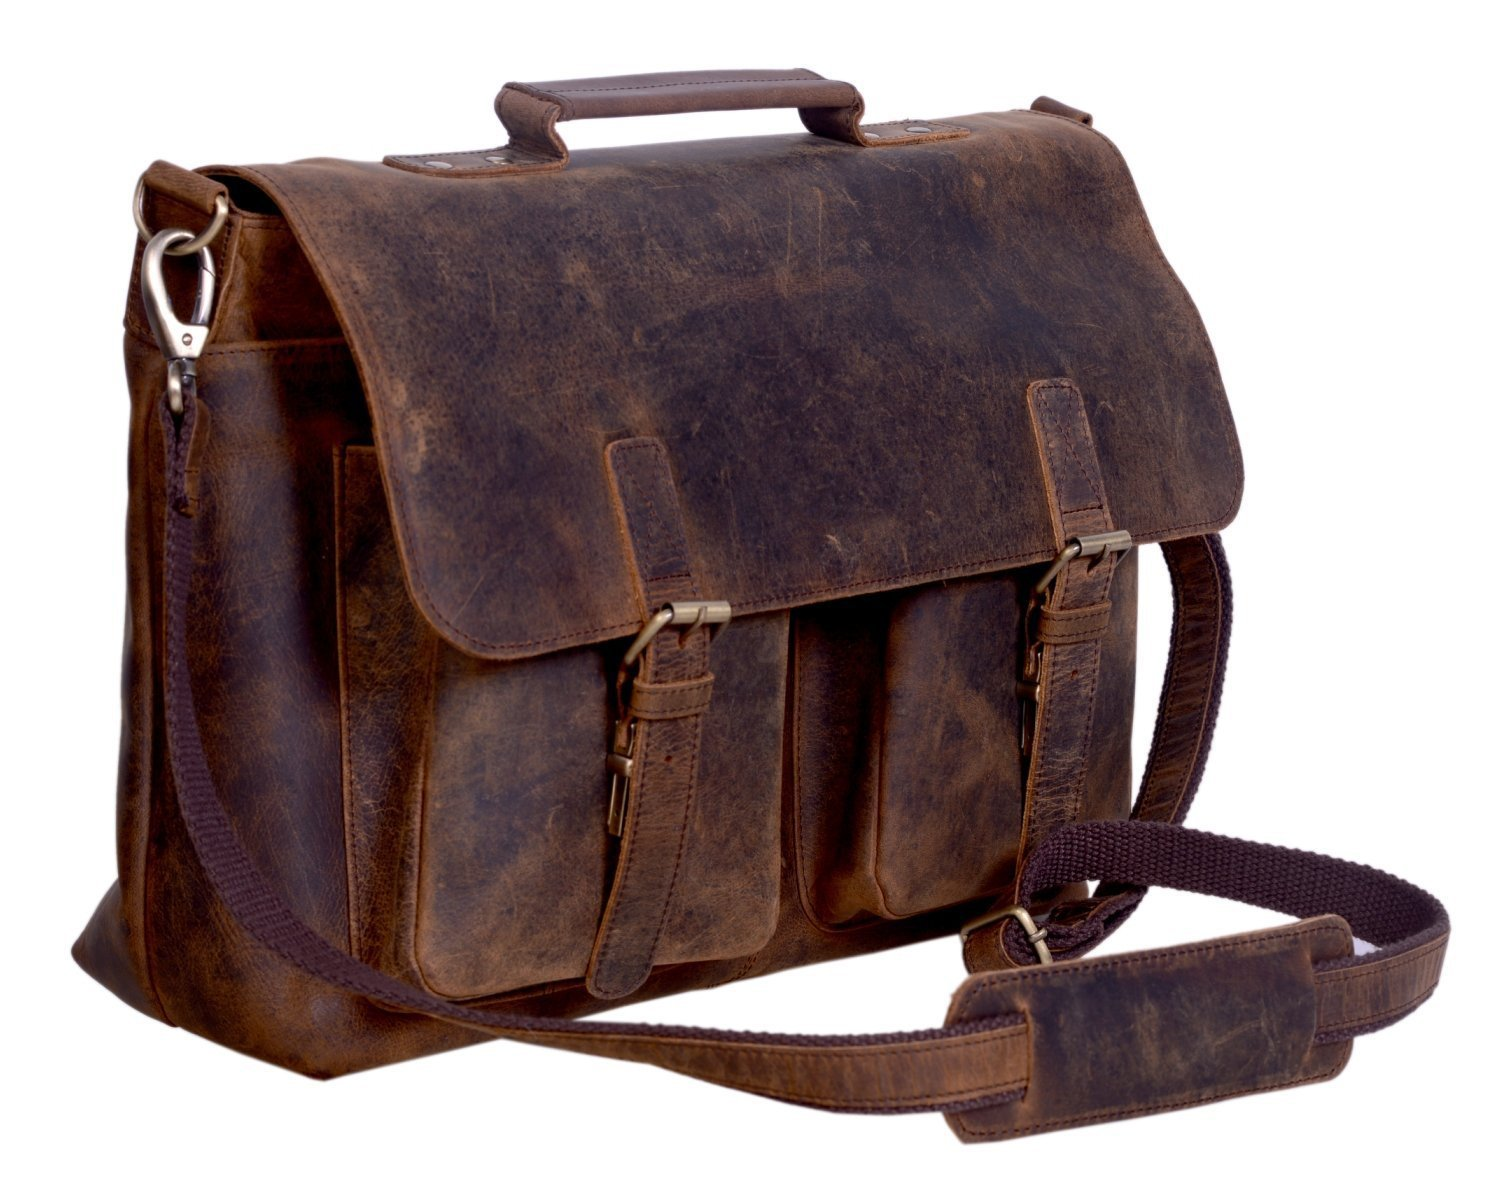 KomalC 18 Inch Buffalo Leather Briefcase Laptop Messenger Bag Office Briefcase College Bag for Men and Women by KomalC